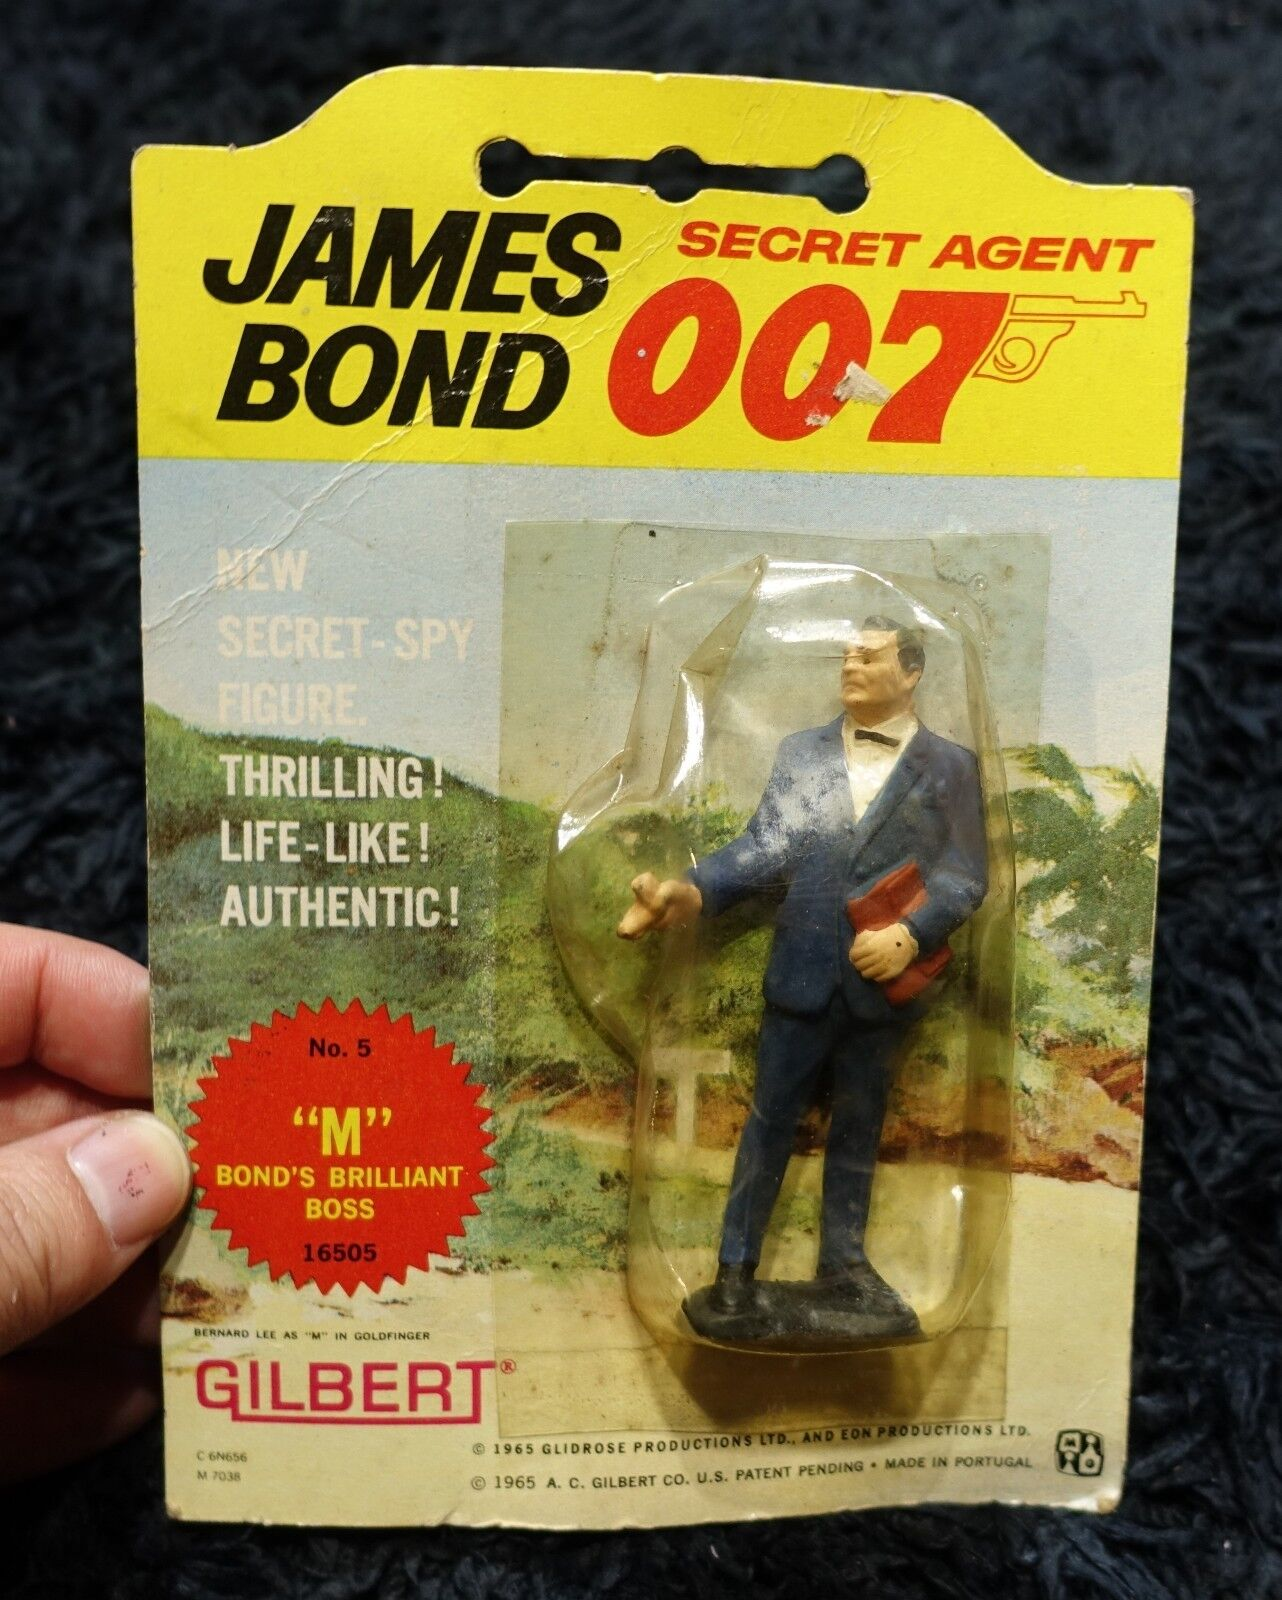 007 BOND'S BRILLIANT BOSS   M   GILBERT VINTAGE FIGURE  007 JAMES BOND